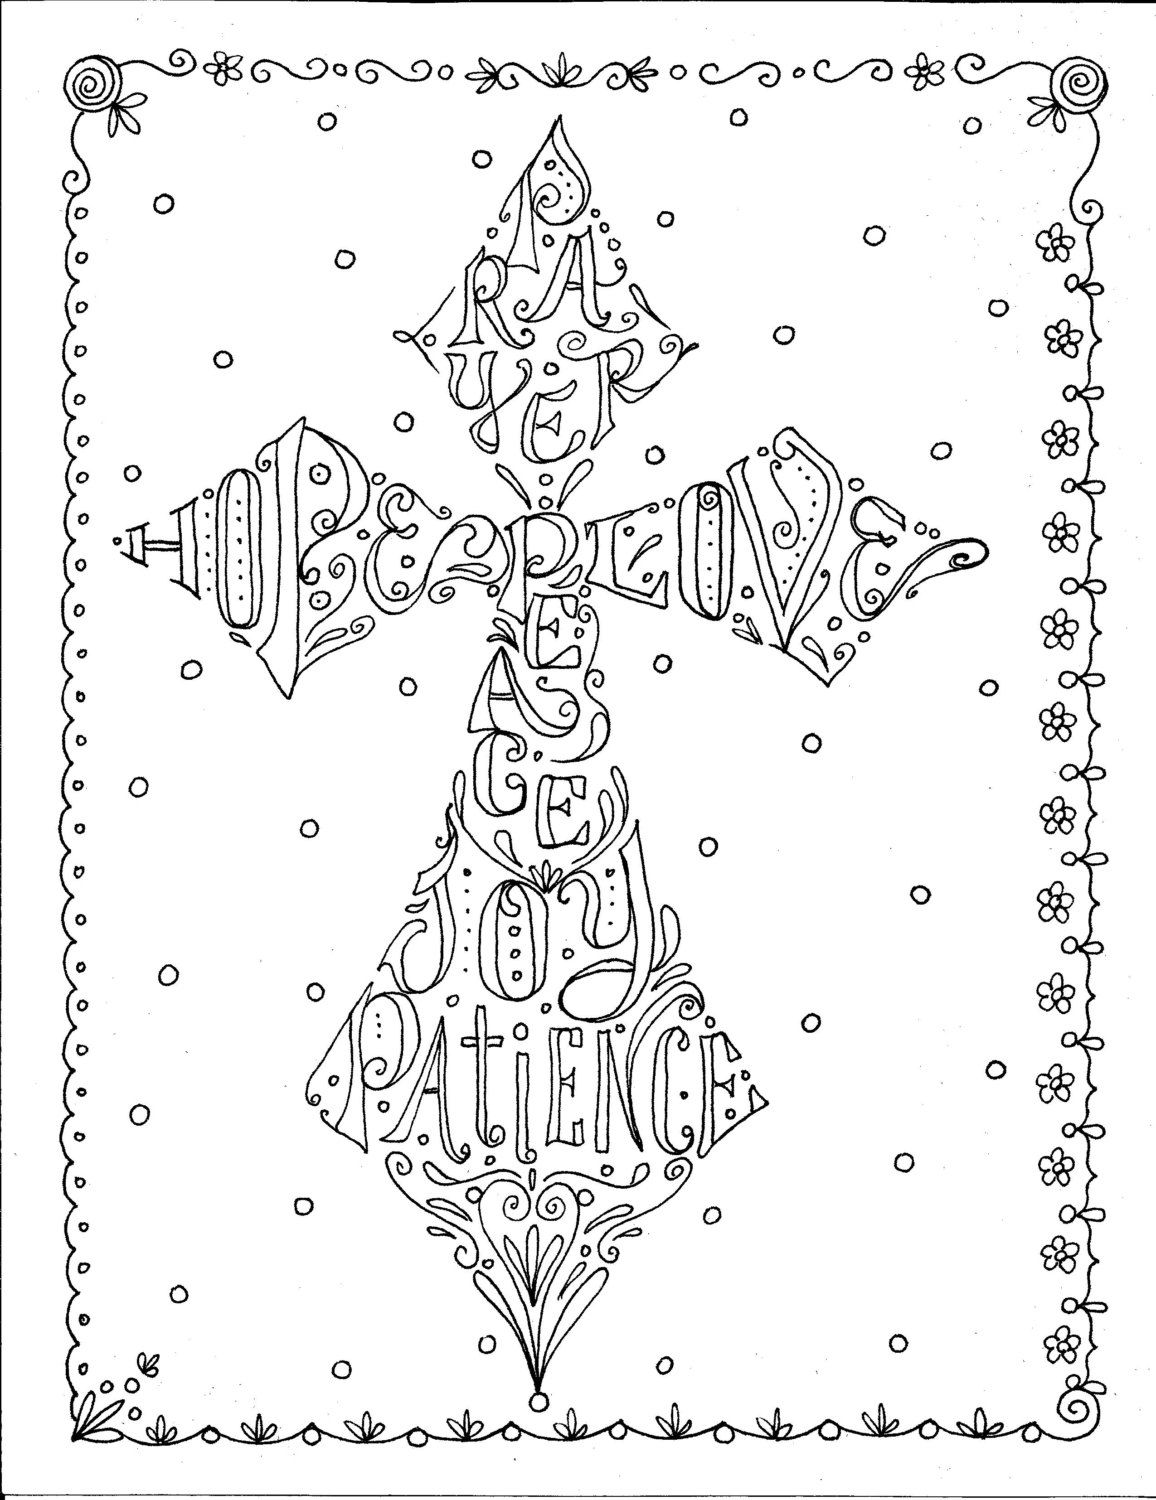 Coloring pages for adults crosses - Instant Download Cross Scripture Coloring Page